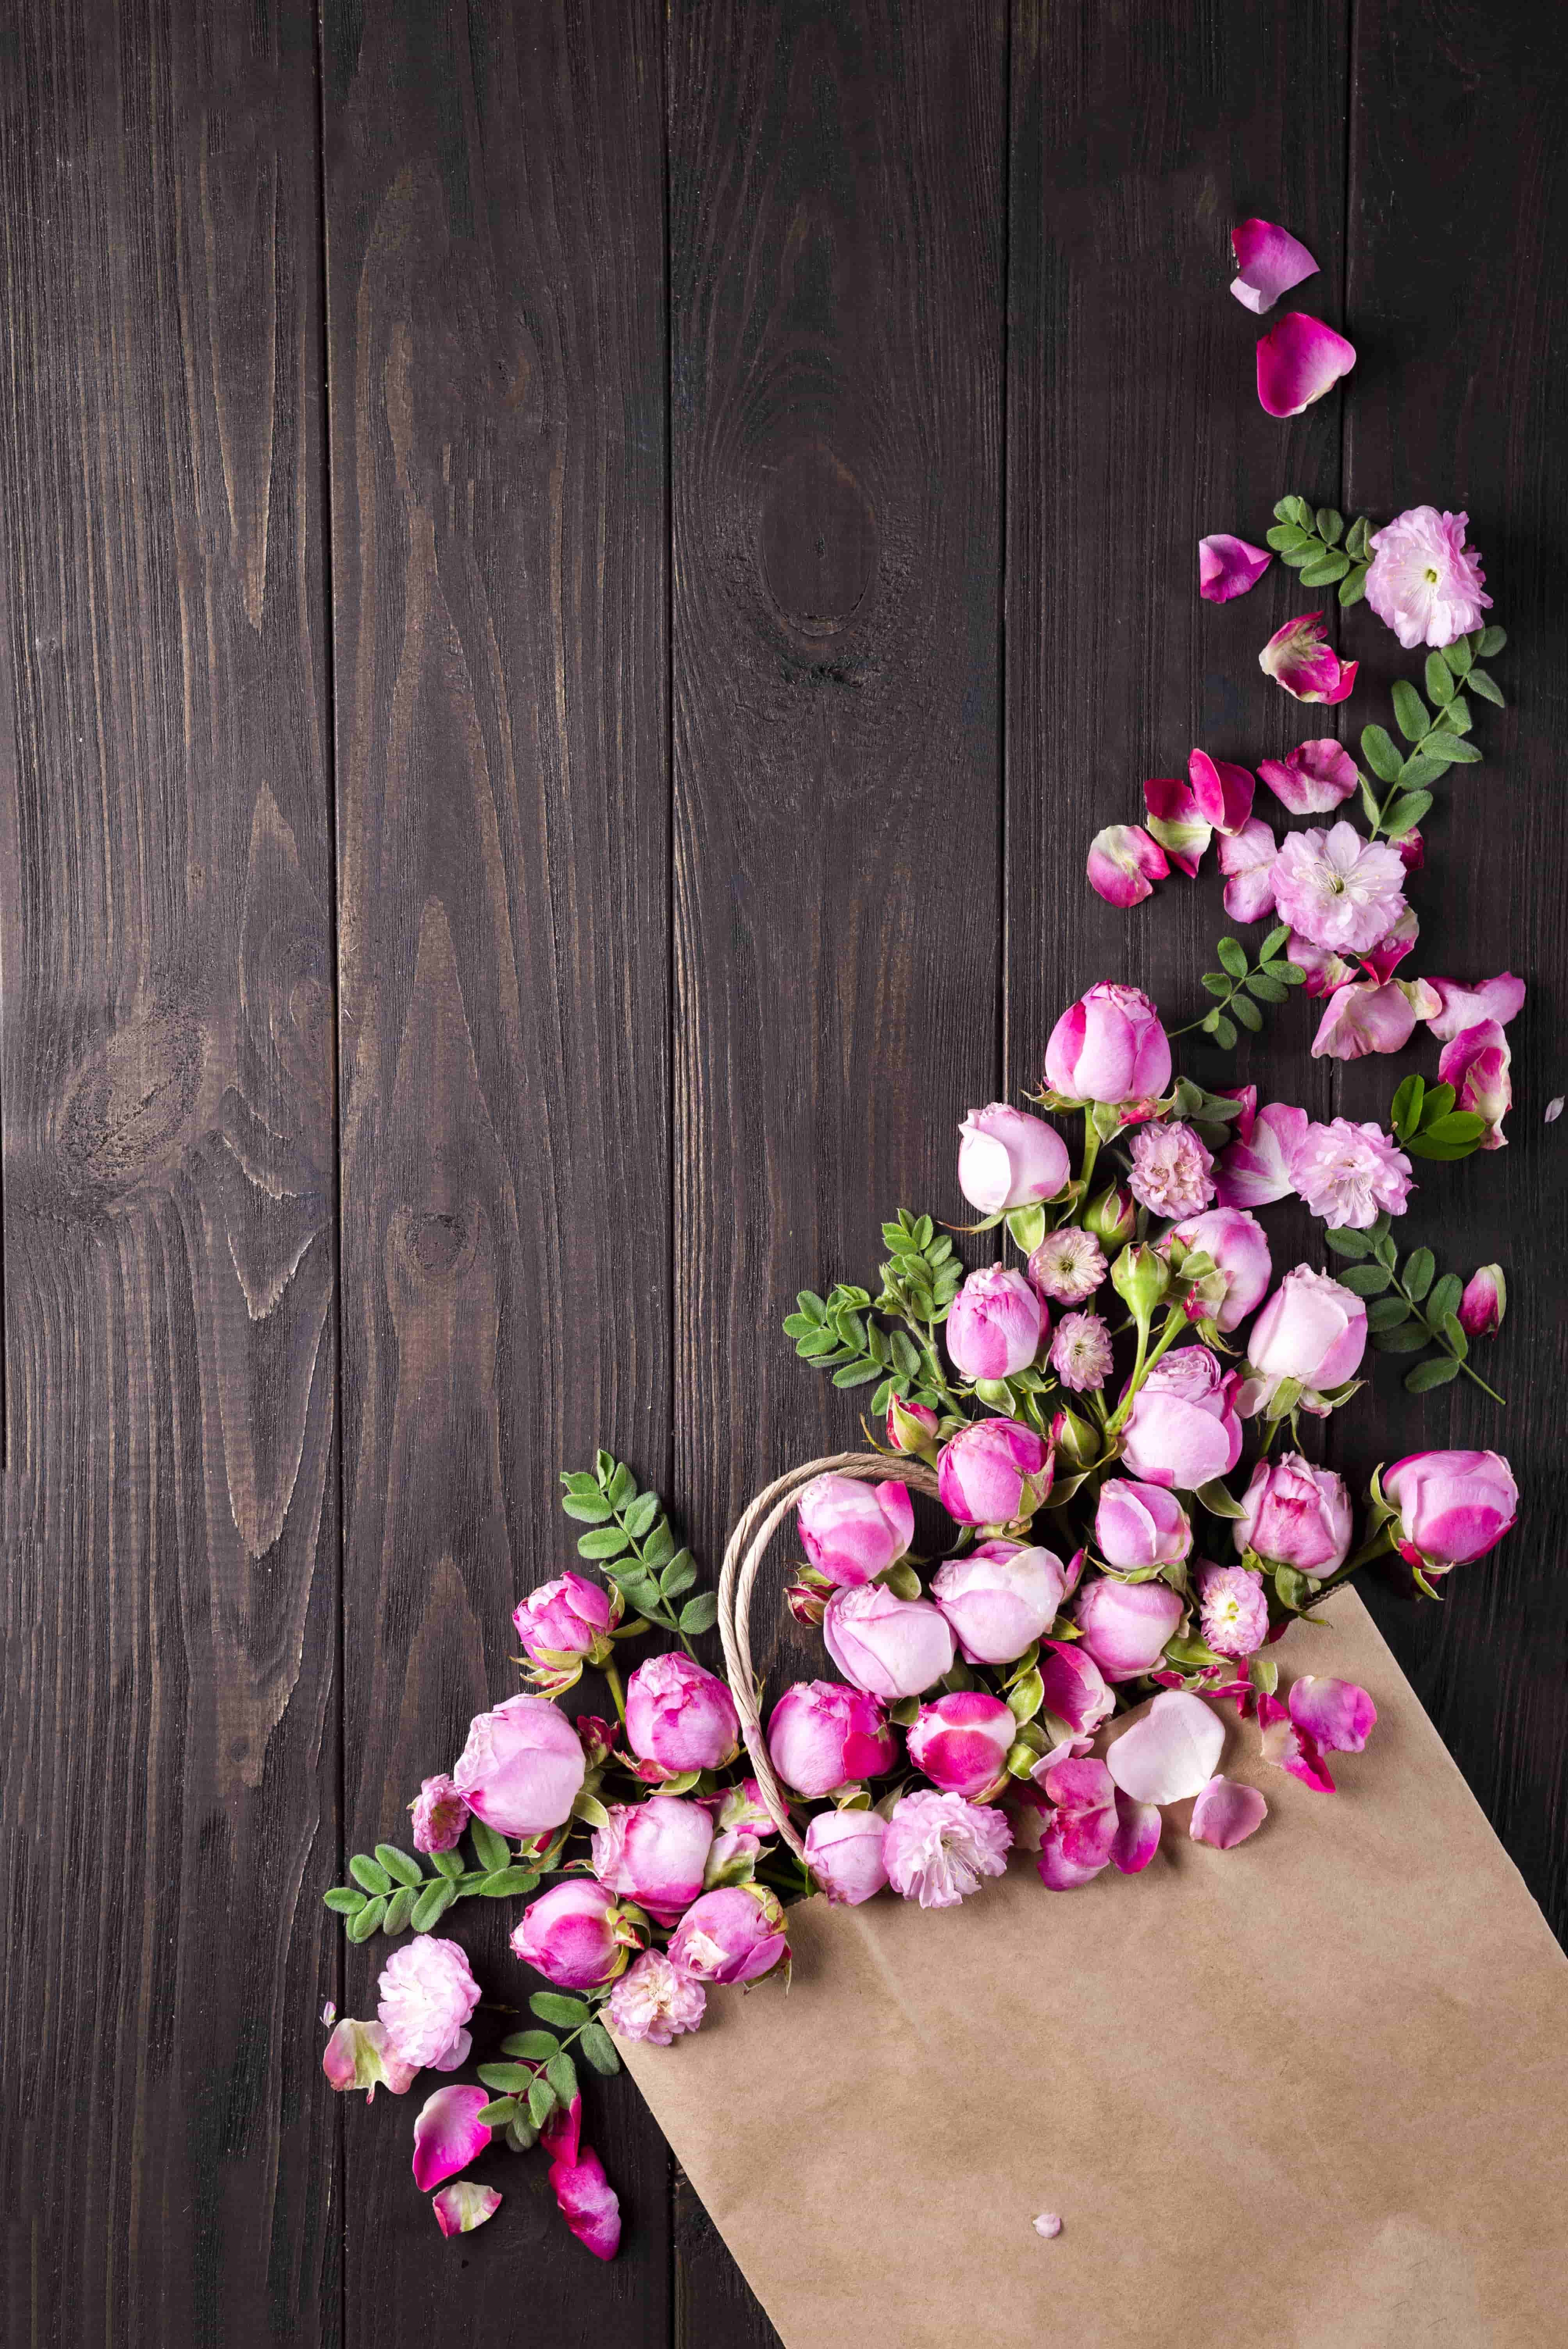 100+ Rose Images | Download Rose Images in HD For Free - Az-Quotes